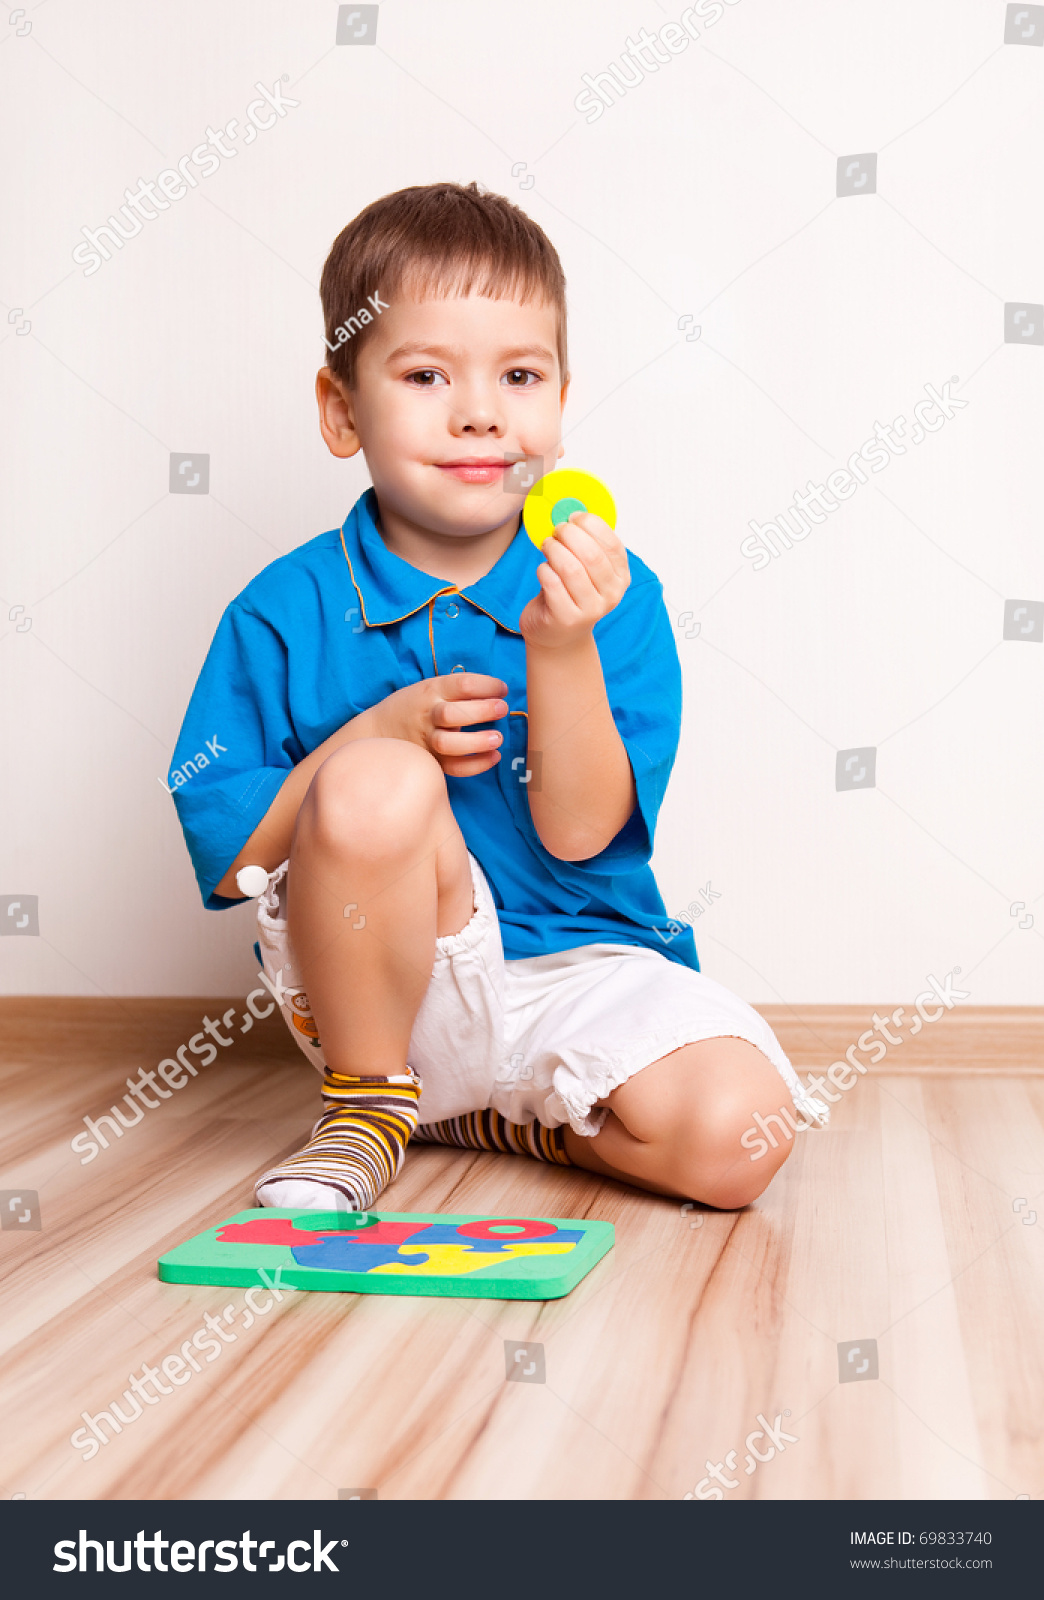 Adorable Four Year Boy With Big Blue Eyes Stock Image: Cute Four Year Old Boy Playing With Toys On The Floor At